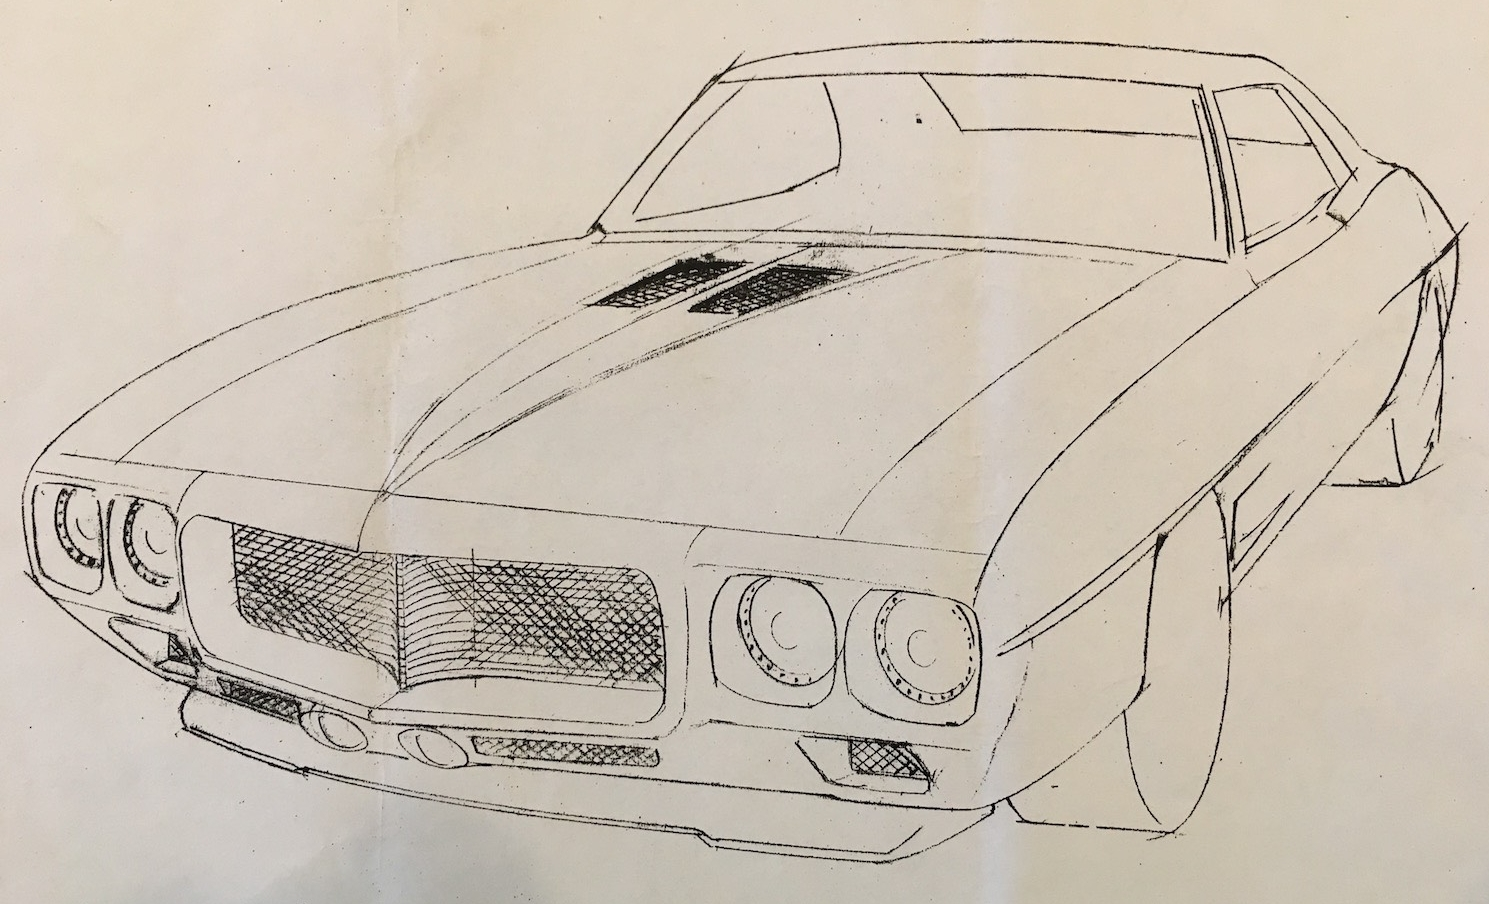 - The customer wanted a unique 69 Firebird.While the car retains its distinctive 1969 styling, our design changes update the car to set it apart by today's standards. These changes include rolled rear pan, integrated spoiler, centered exhaust, a new grill that retains a